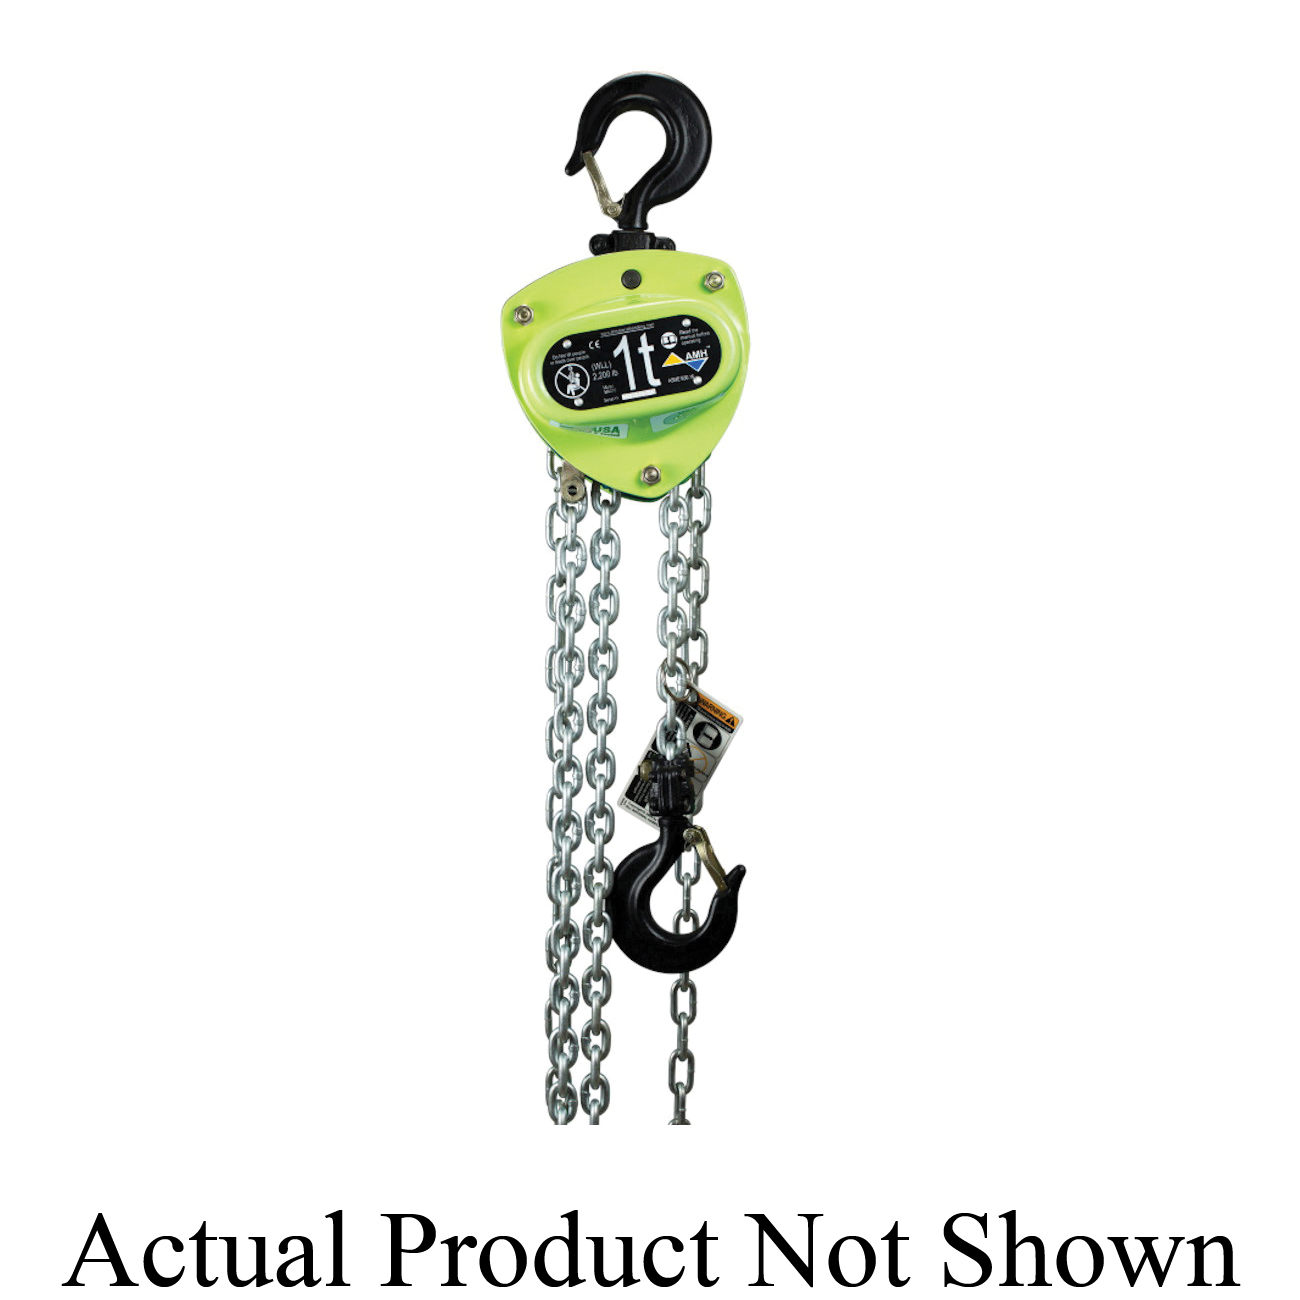 AMH™ MA200-20-18U Hand Chain Hoist With Sling Hook, 44000 lb Load, 20 ft H Lifting, 46.1 in Min Between Hooks, 3.19 in Hook Opening, 98x2 lb Rated